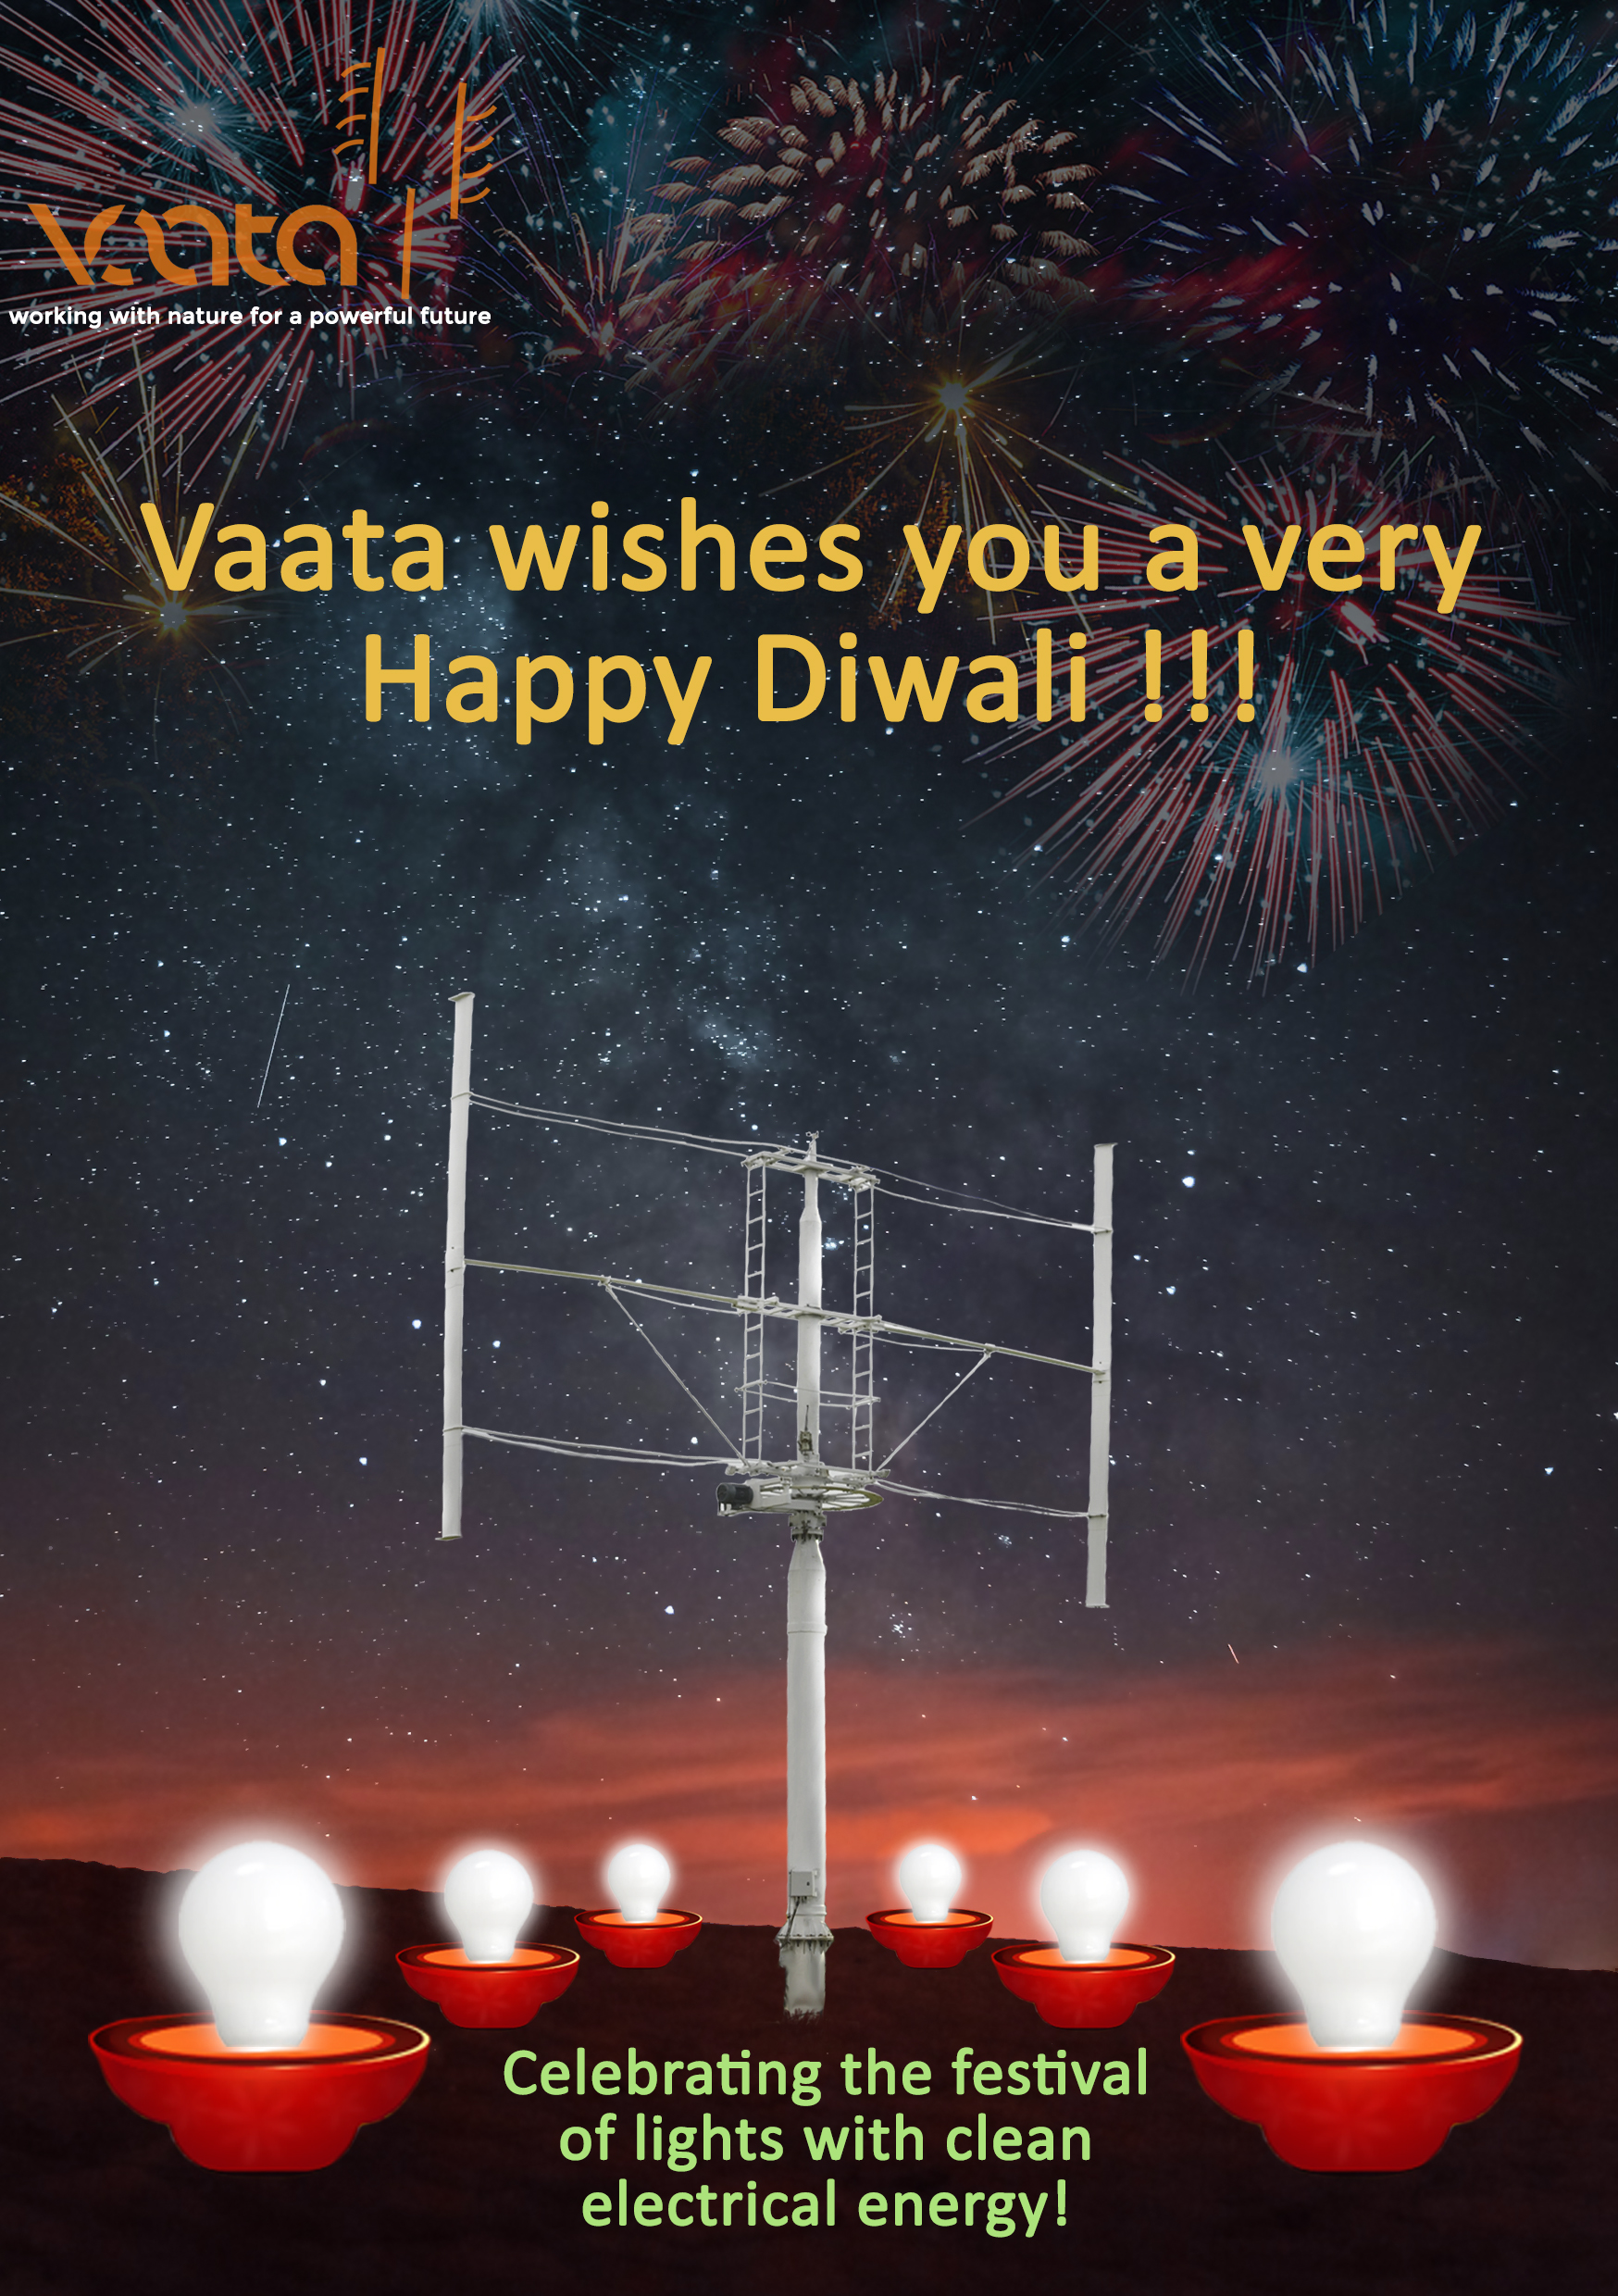 2018-11-03diwali post.jpg